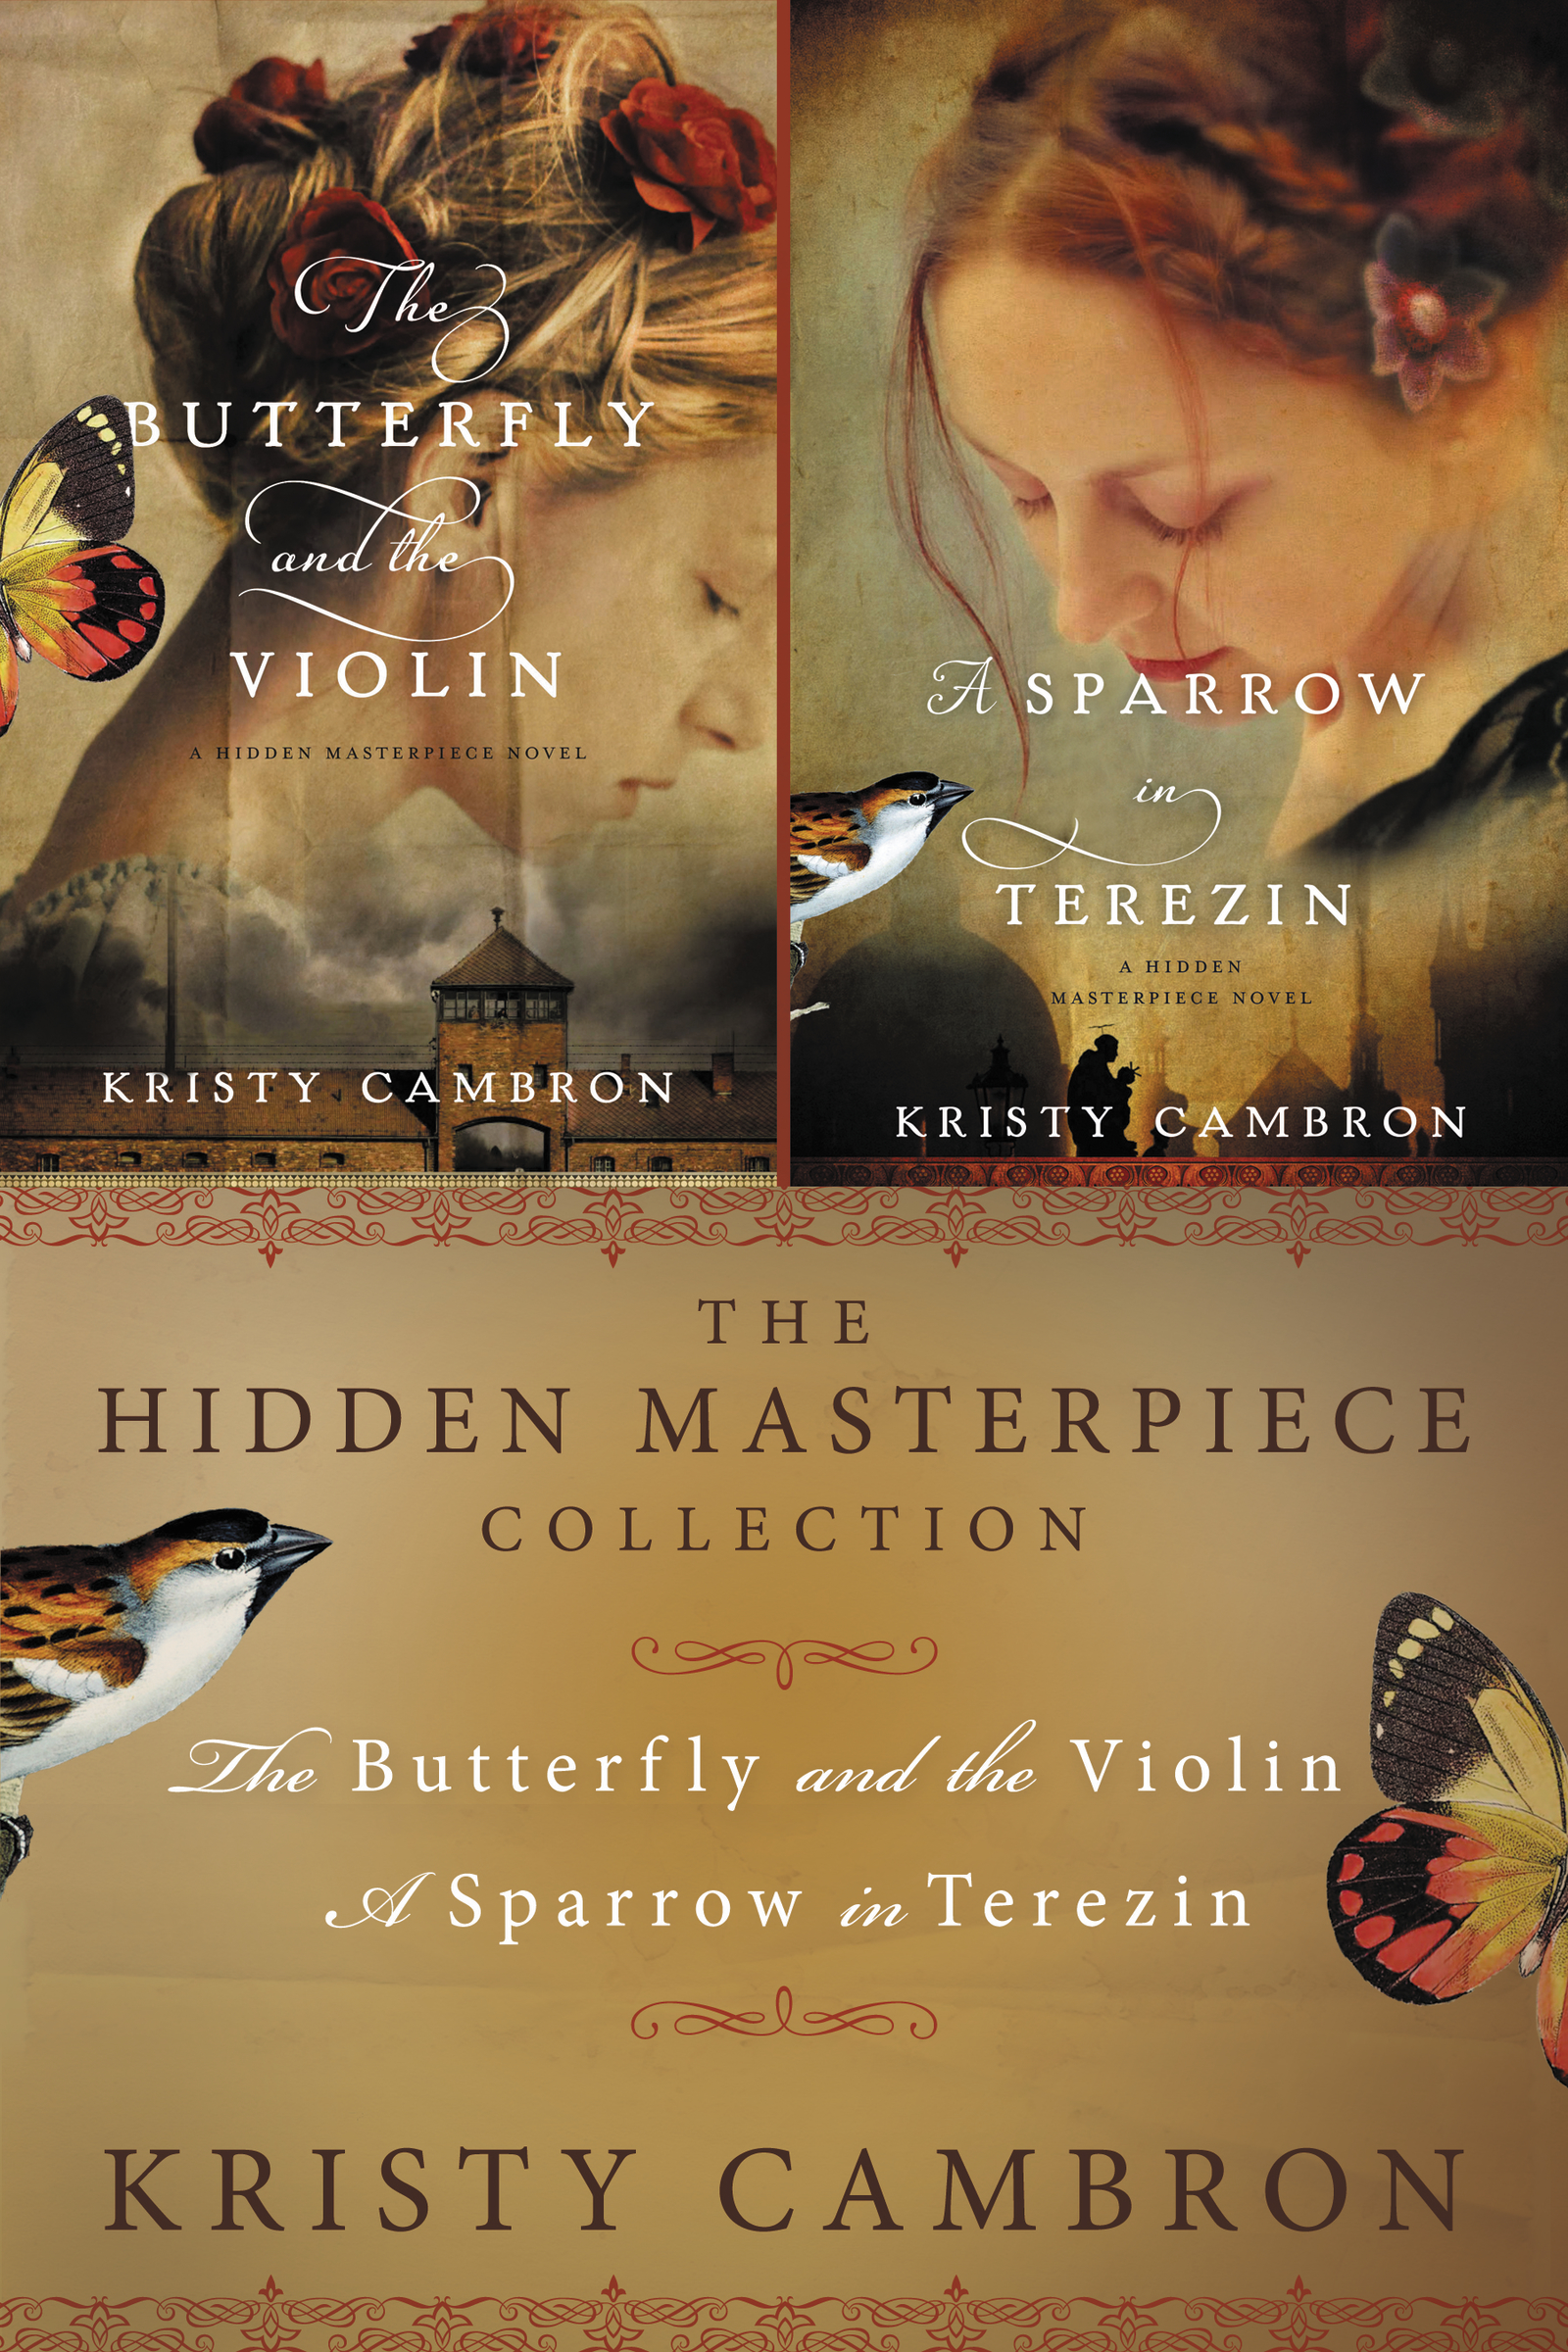 The Hidden Masterpiece Collection The Butterfly and the Violin and A Sparrow in Terezin